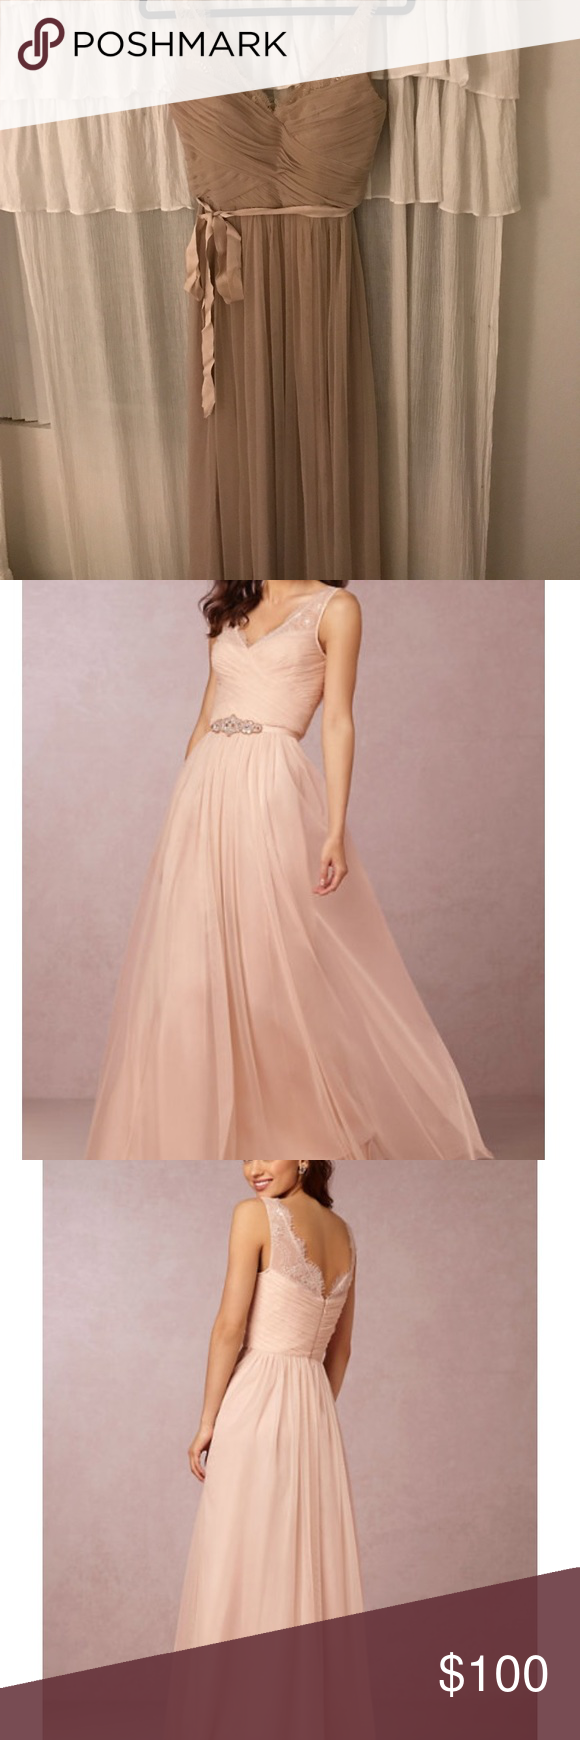 Sew in cups for wedding dress  Bhldn By Hitherto Fleur Dress in Sandstone sz  Taupe colour Darts